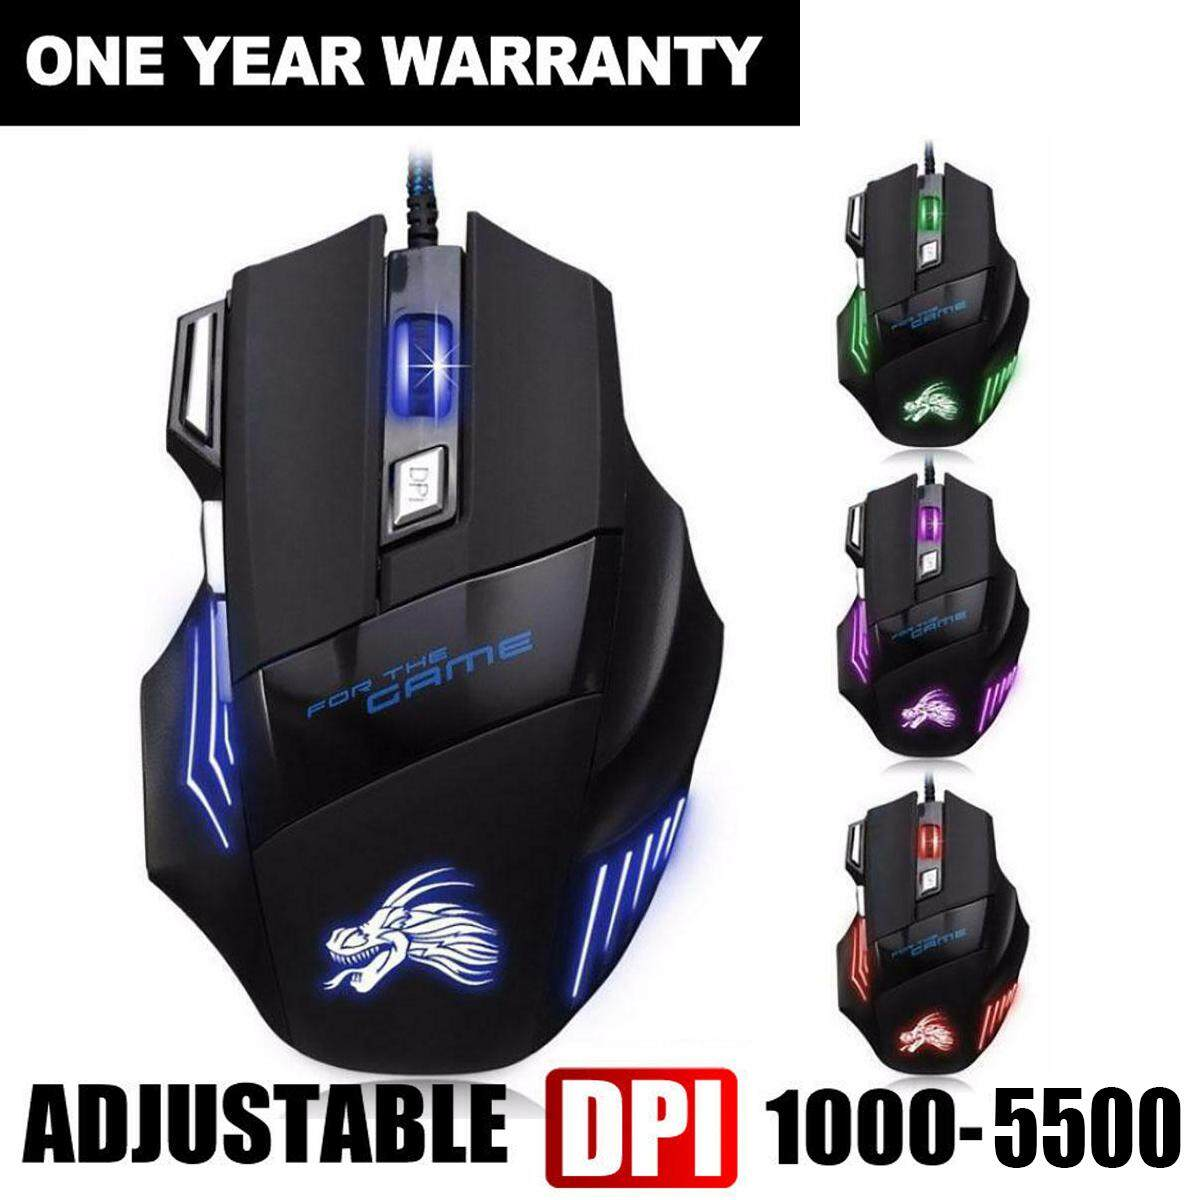 5500 DPI 7 Button LED Optical USB Wired Gaming Mouse Mice For Pro Gamer